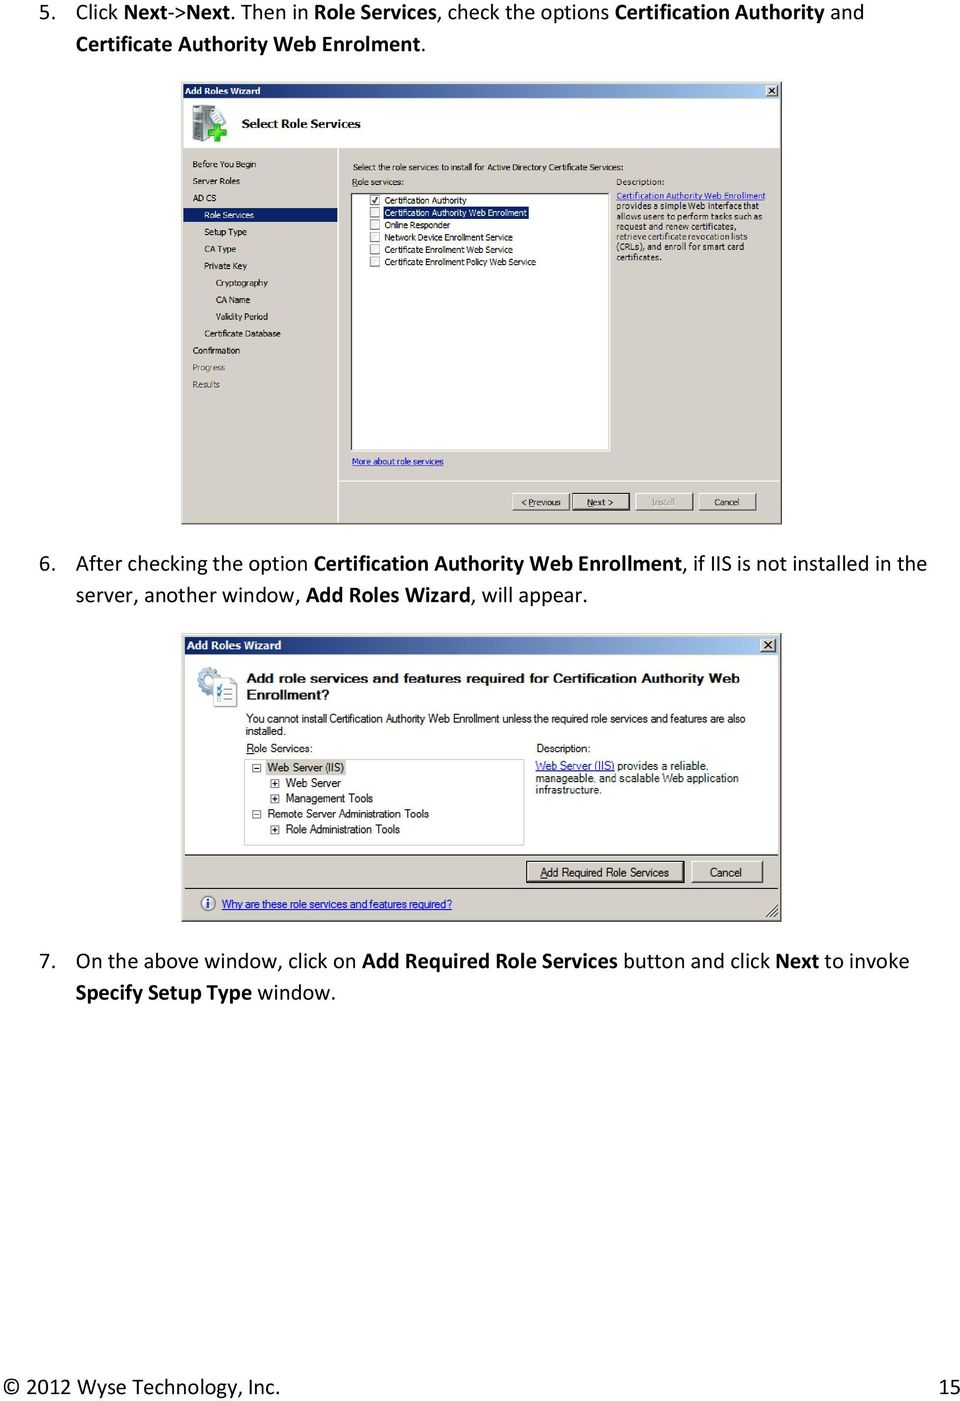 After checking the option Certification Authority Web Enrollment, if IIS is not installed in the server,